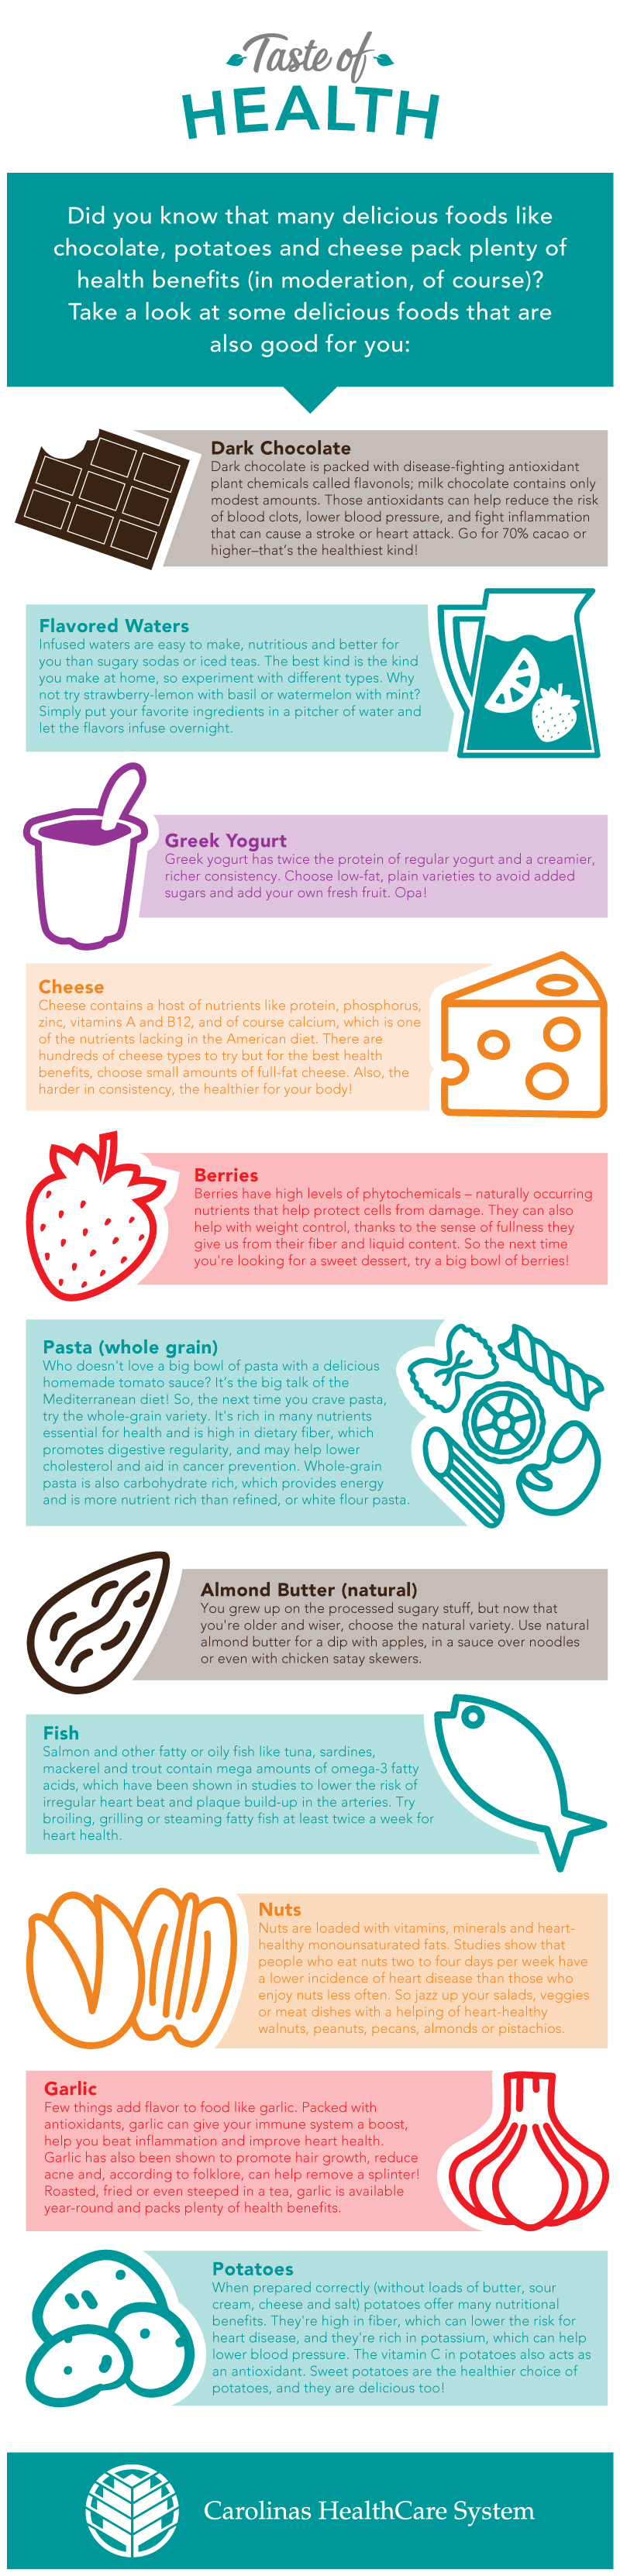 Foods that are Delicious and Good for You